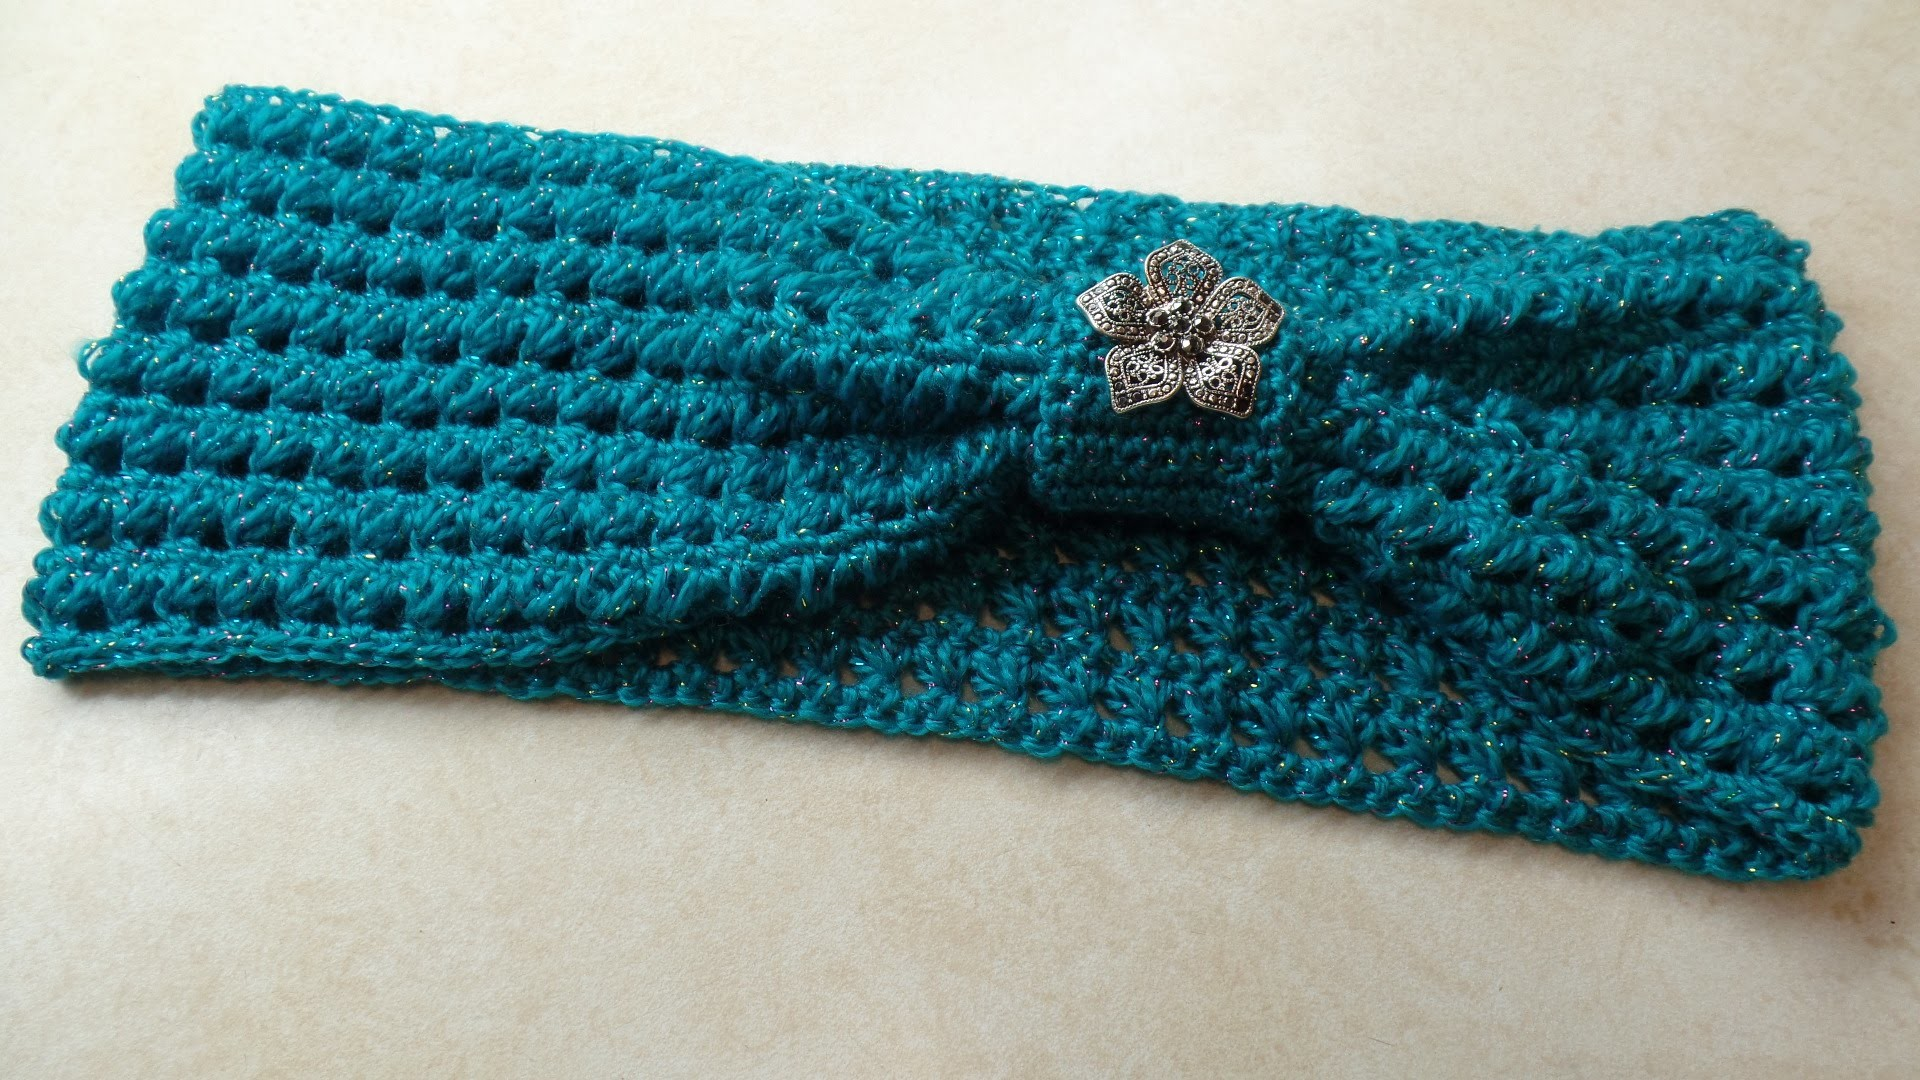 #Crochet Triangle Stitch Cowl Scarf #TUTORIAL